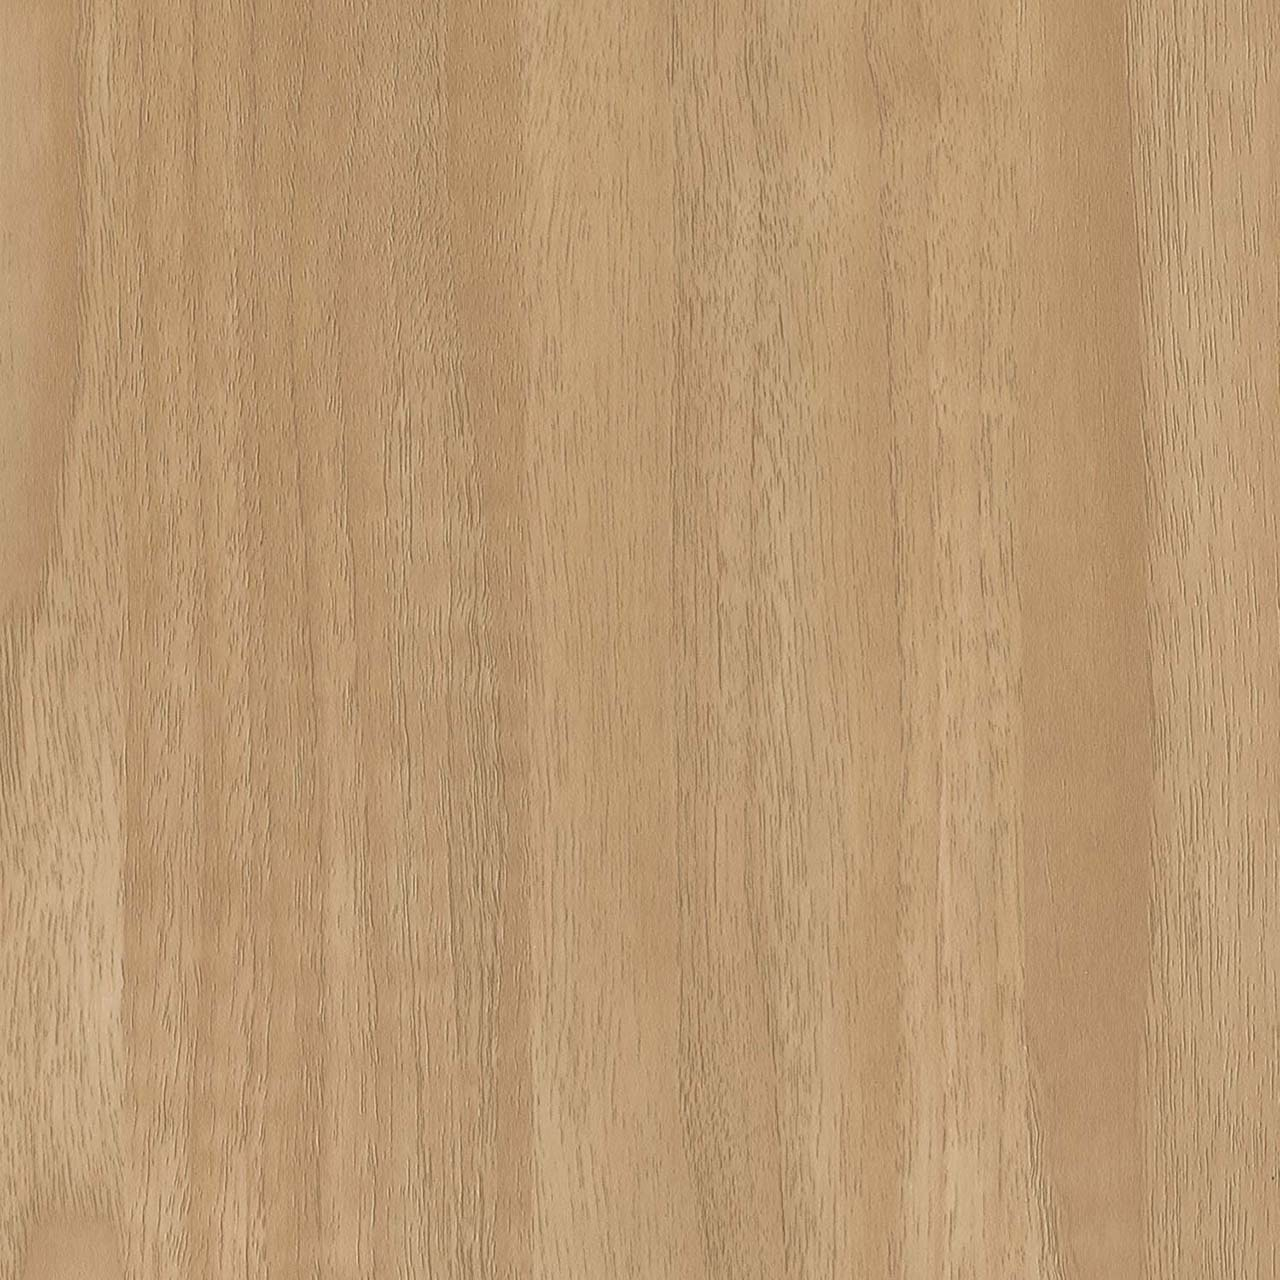 Stilo Walnut effect laminate panel